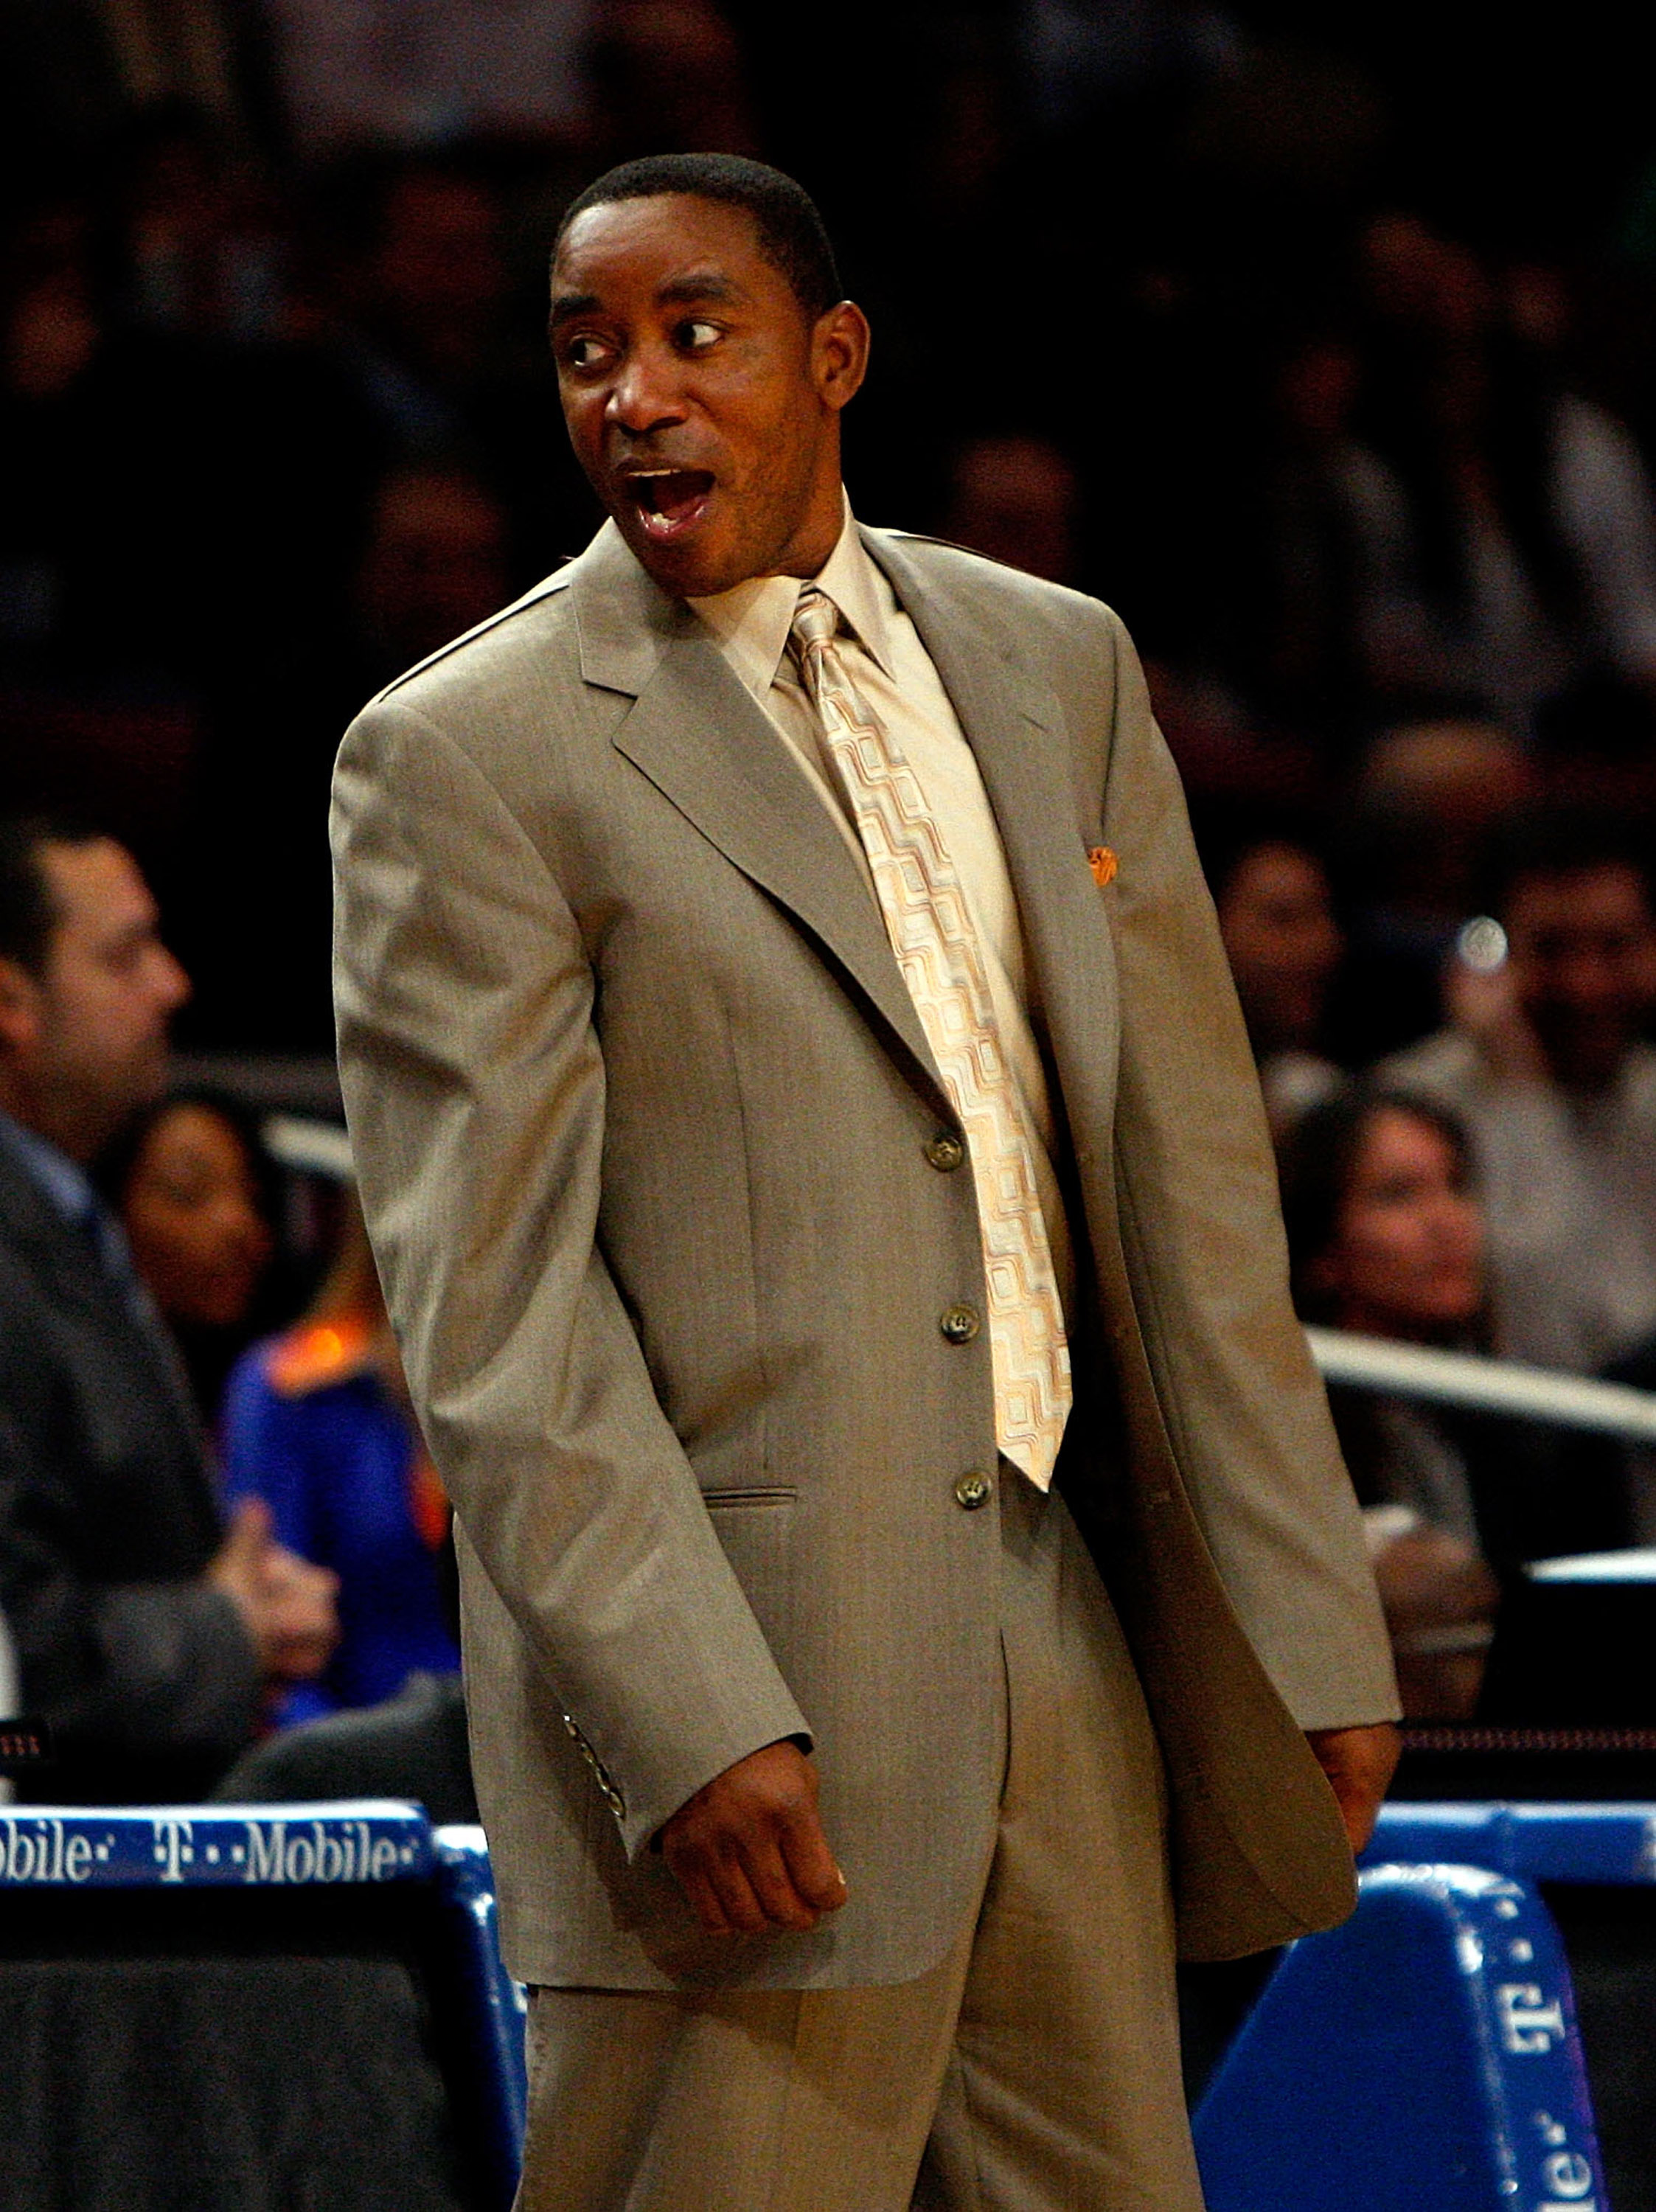 NEW YORK - MARCH 24: Head coach of the New York Knicks Isiah Thomas reacts to a call on the sideline against the New Jersey Nets on March 24, 2008 at Madison Square Garden in New York City. NOTE TO USER: User expressly acknowledges and agrees that, by dow